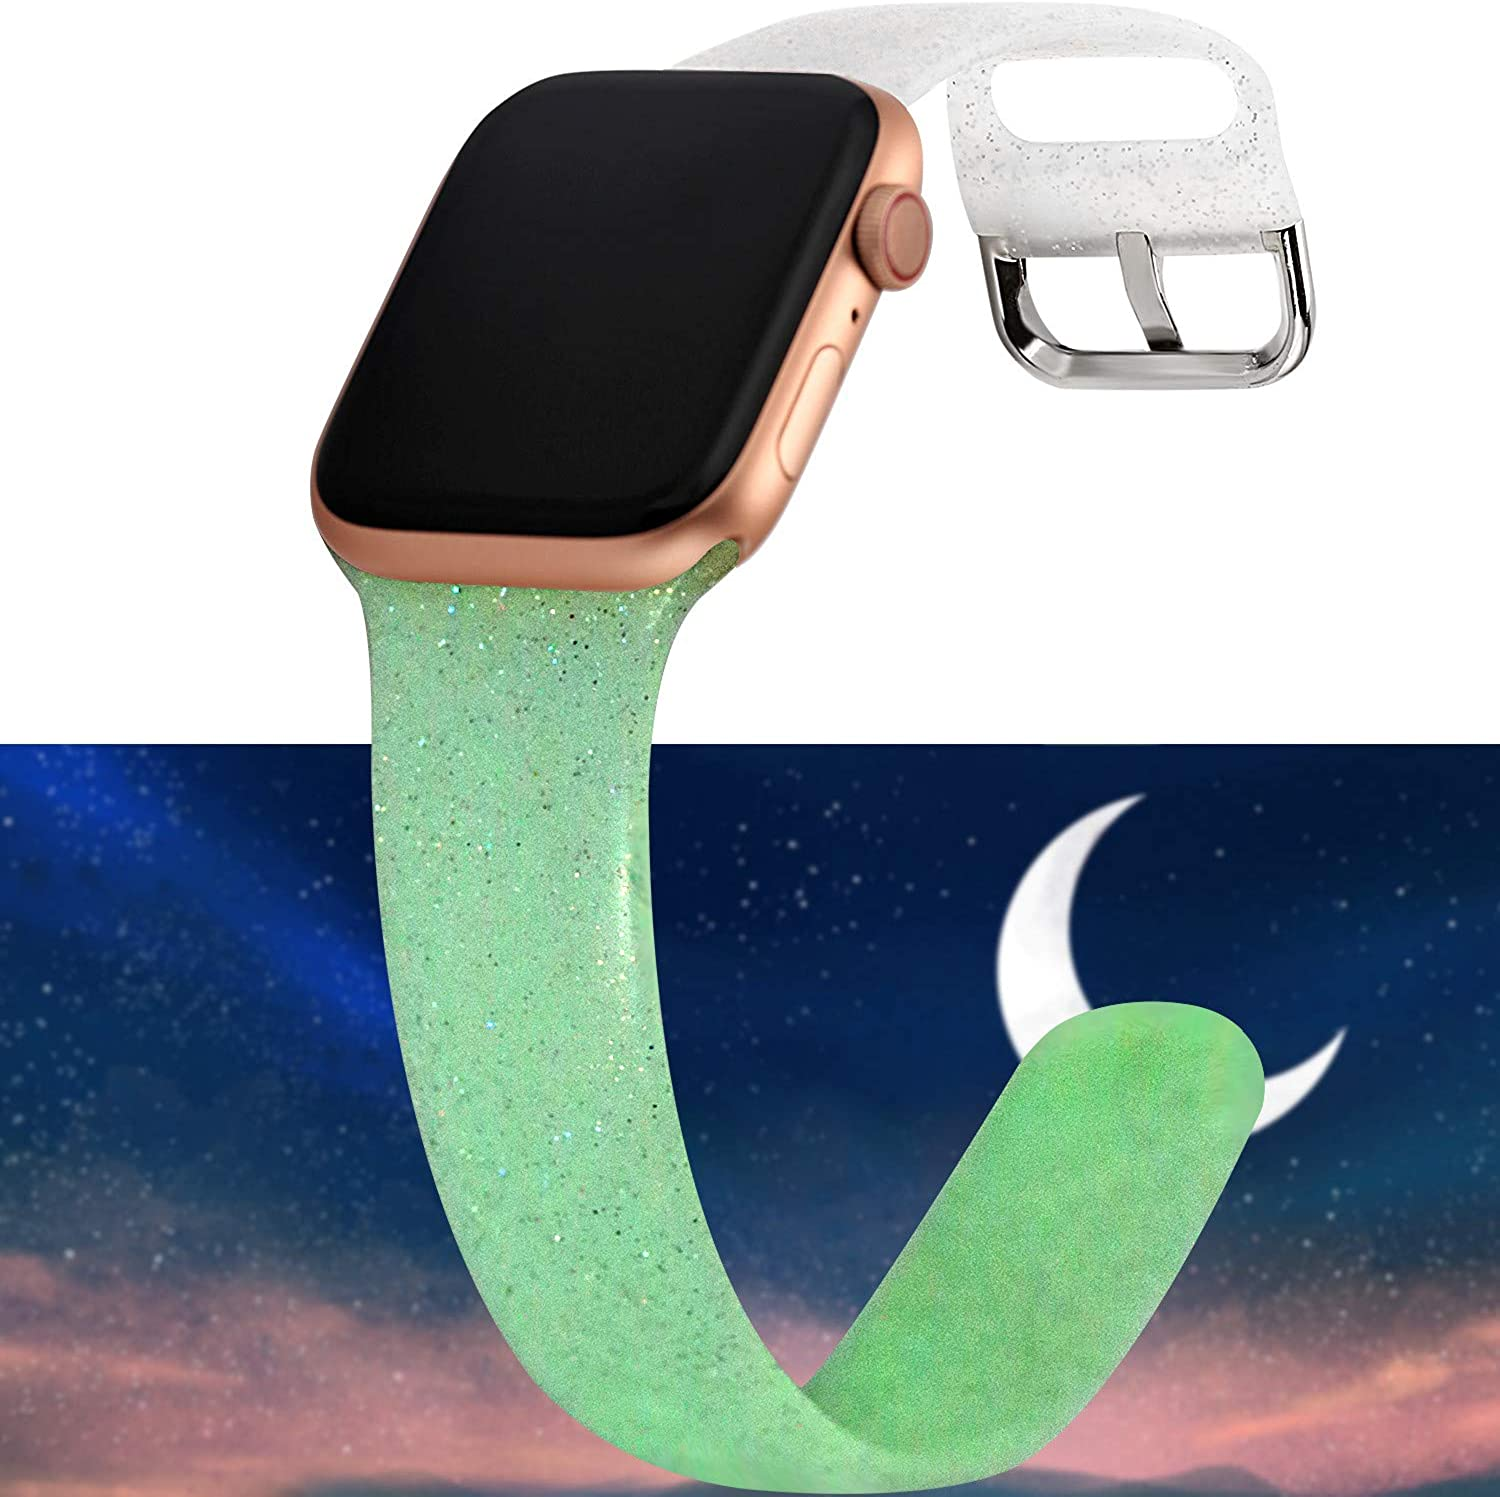 Greaciary Sport Glitter Band Compatible with Apple Watch Band 38mm,40mm 42mm 44mm,Sparkle Bling Soft Silicone Replacement Strap Compatible for iWatch Series 5/4/3/2/1 Women